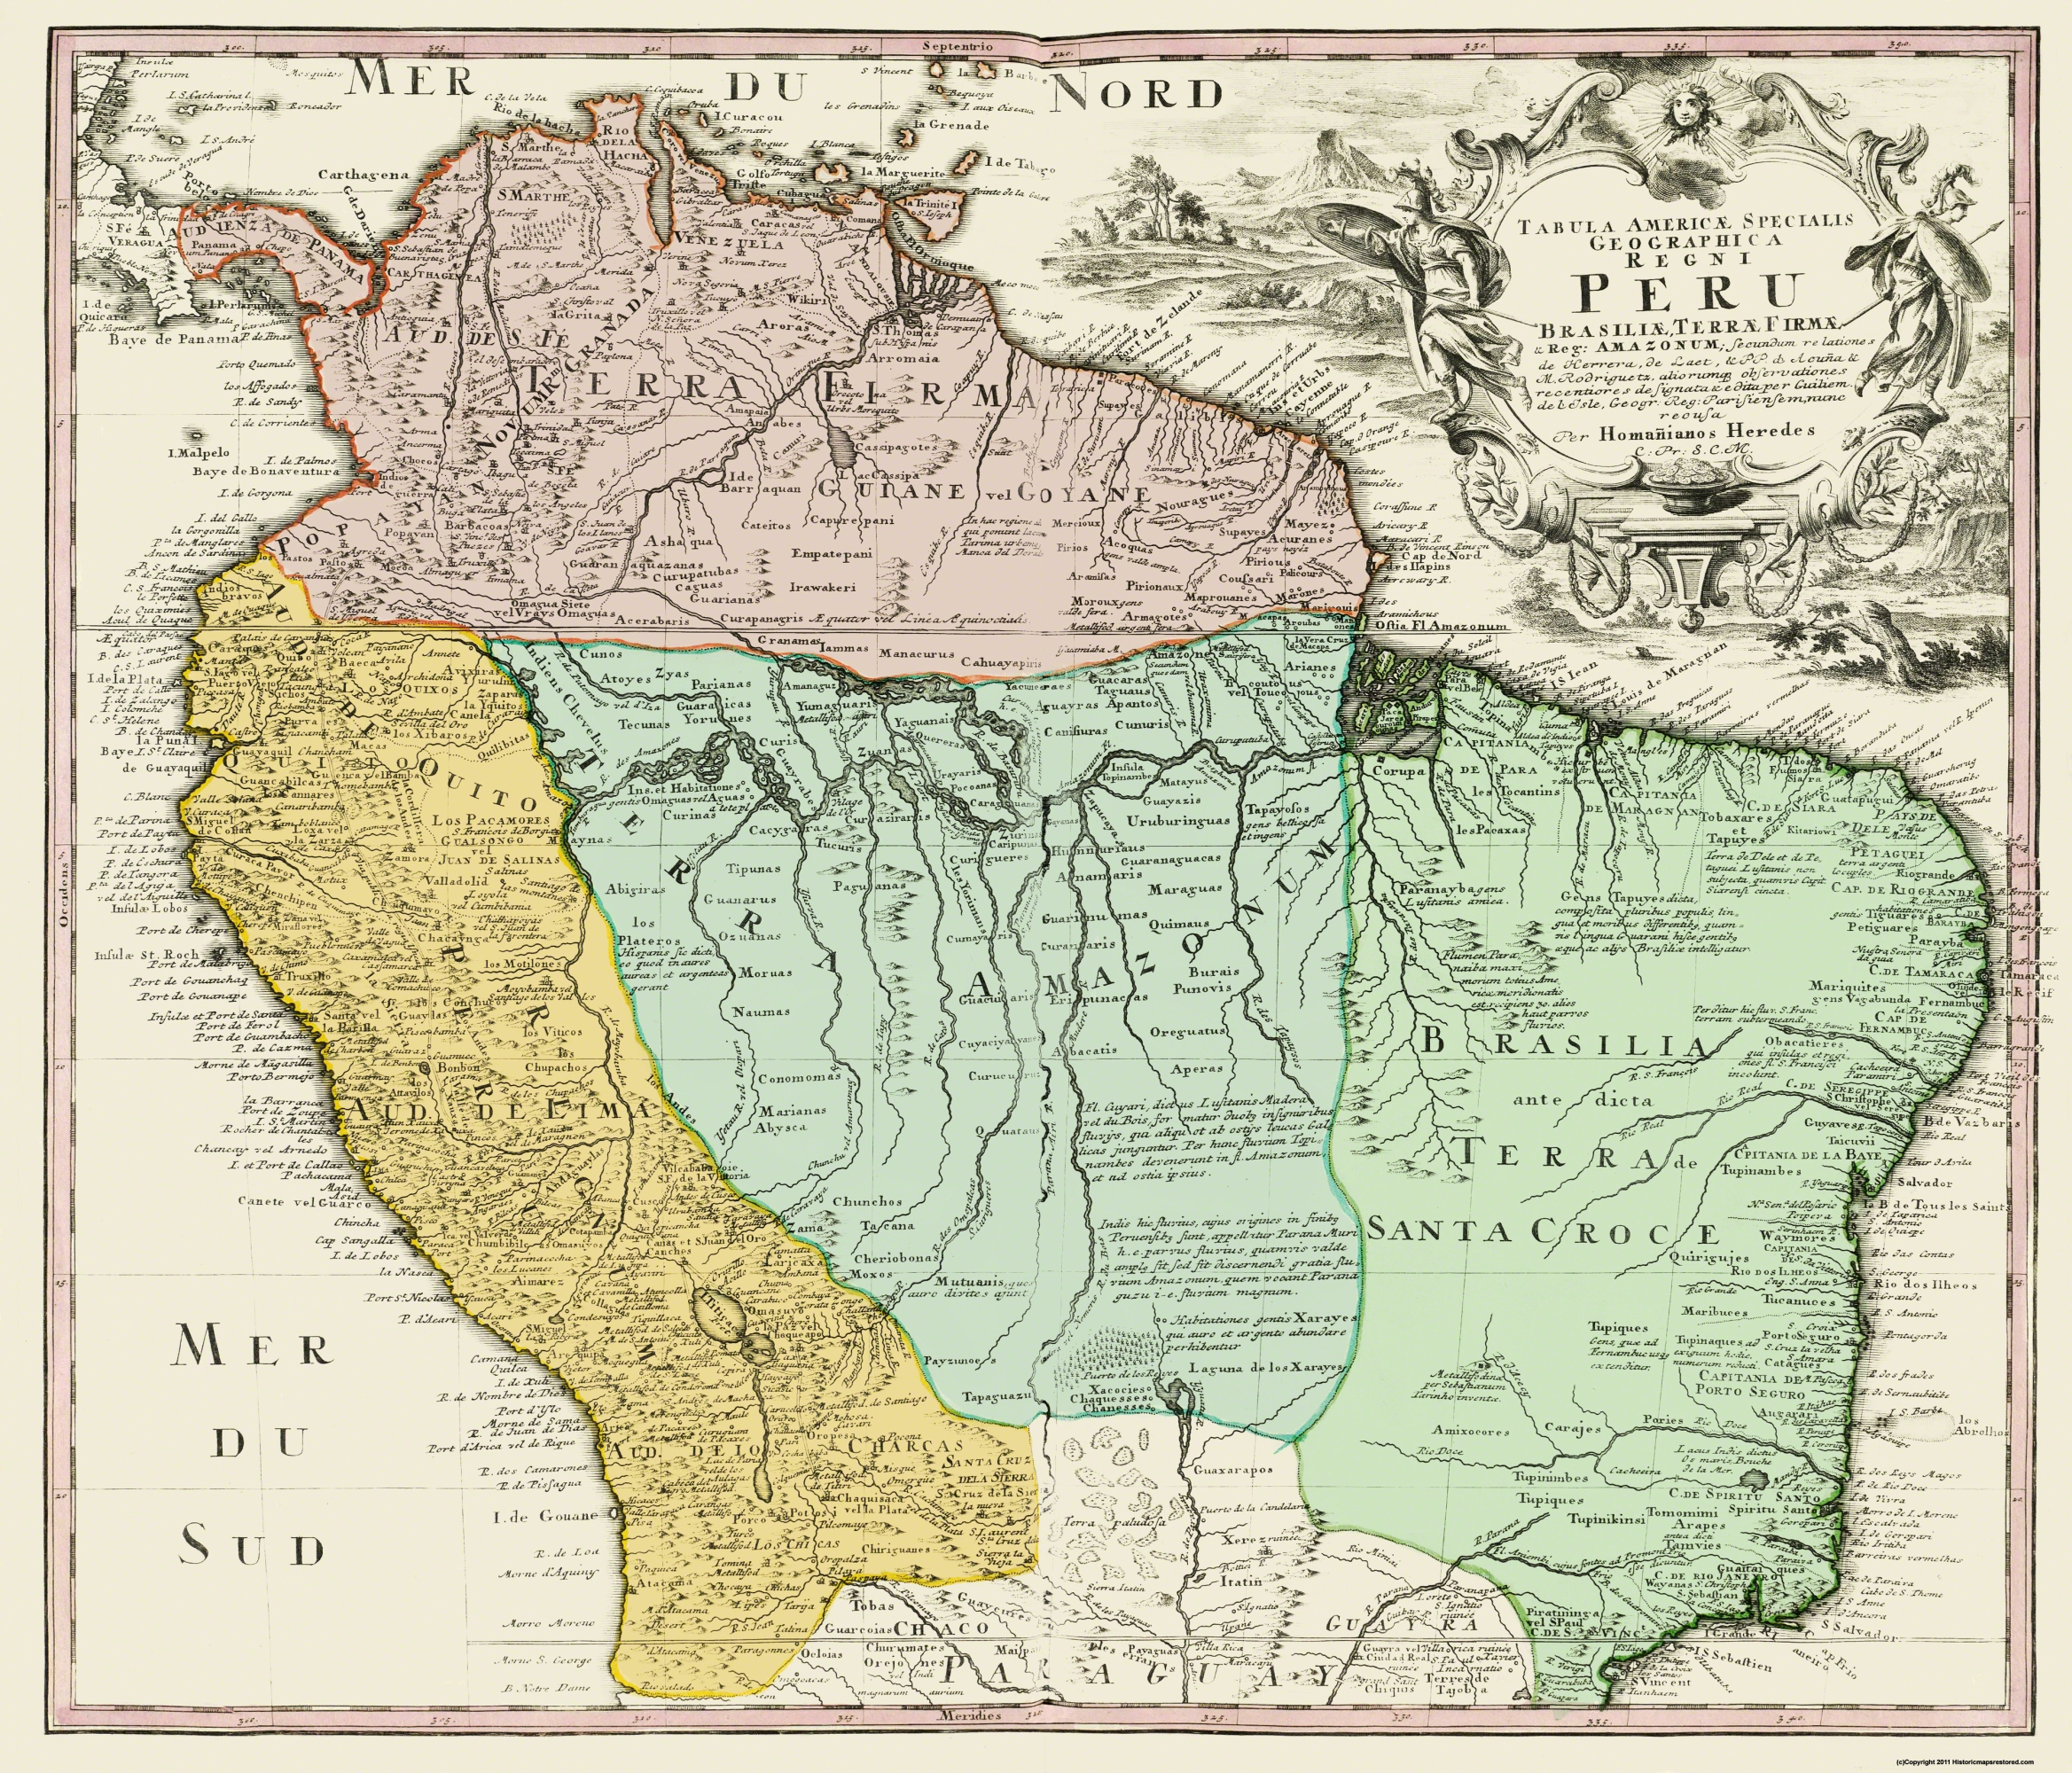 Old South America Map - Peru, zil - Homann 1748 - 26.88 x 23 on map of mexico, maps in south america, colombia map in america, map of africa, costa rica, map of patagonia south america, map of amazon basin south america, puerto rico, map of south america with argentina, machu picchu, map of the galapagos islands south america, lima south america, top 10 poorest cities in america, machu picchu peru south america, close up map of south america, peru in south america, nicaragua on map of south america, map of santiago south america, map of atacama desert south america, information on peru south america, map of aruba and south america, map of trinidad and tobago south america, political map of south america,